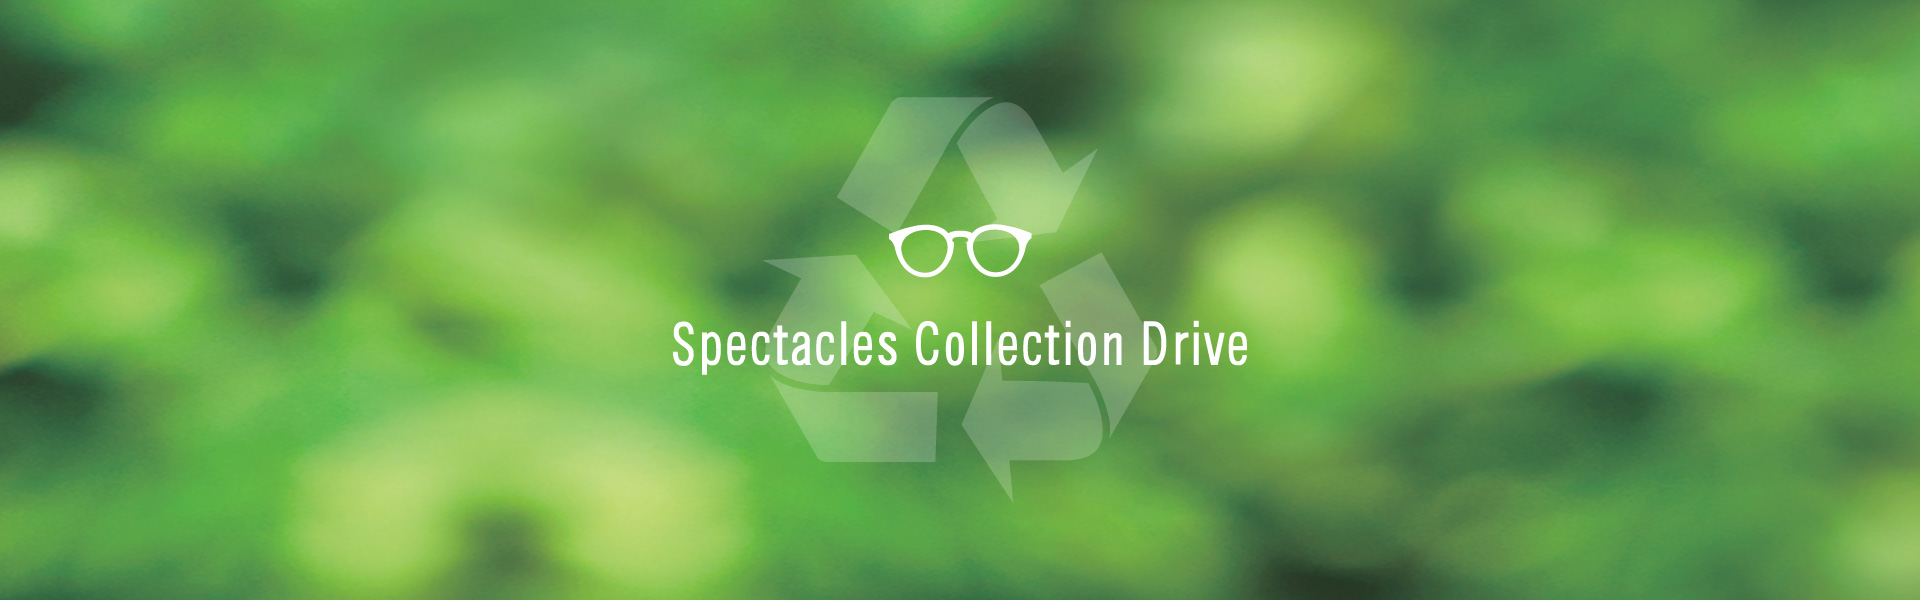 Spectacles Collection Drive